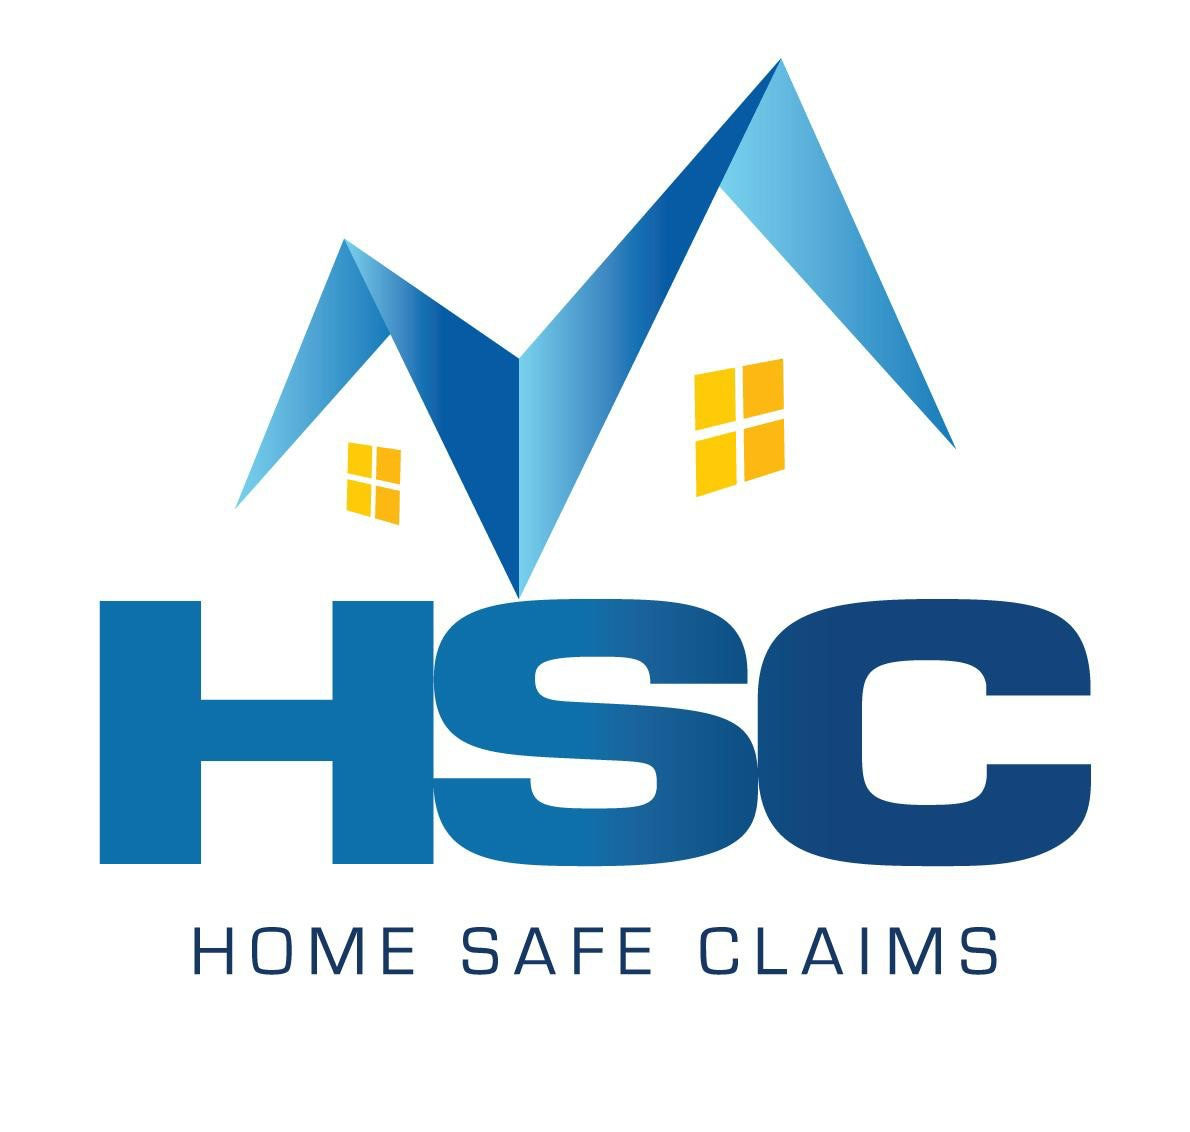 Home Safe Claims